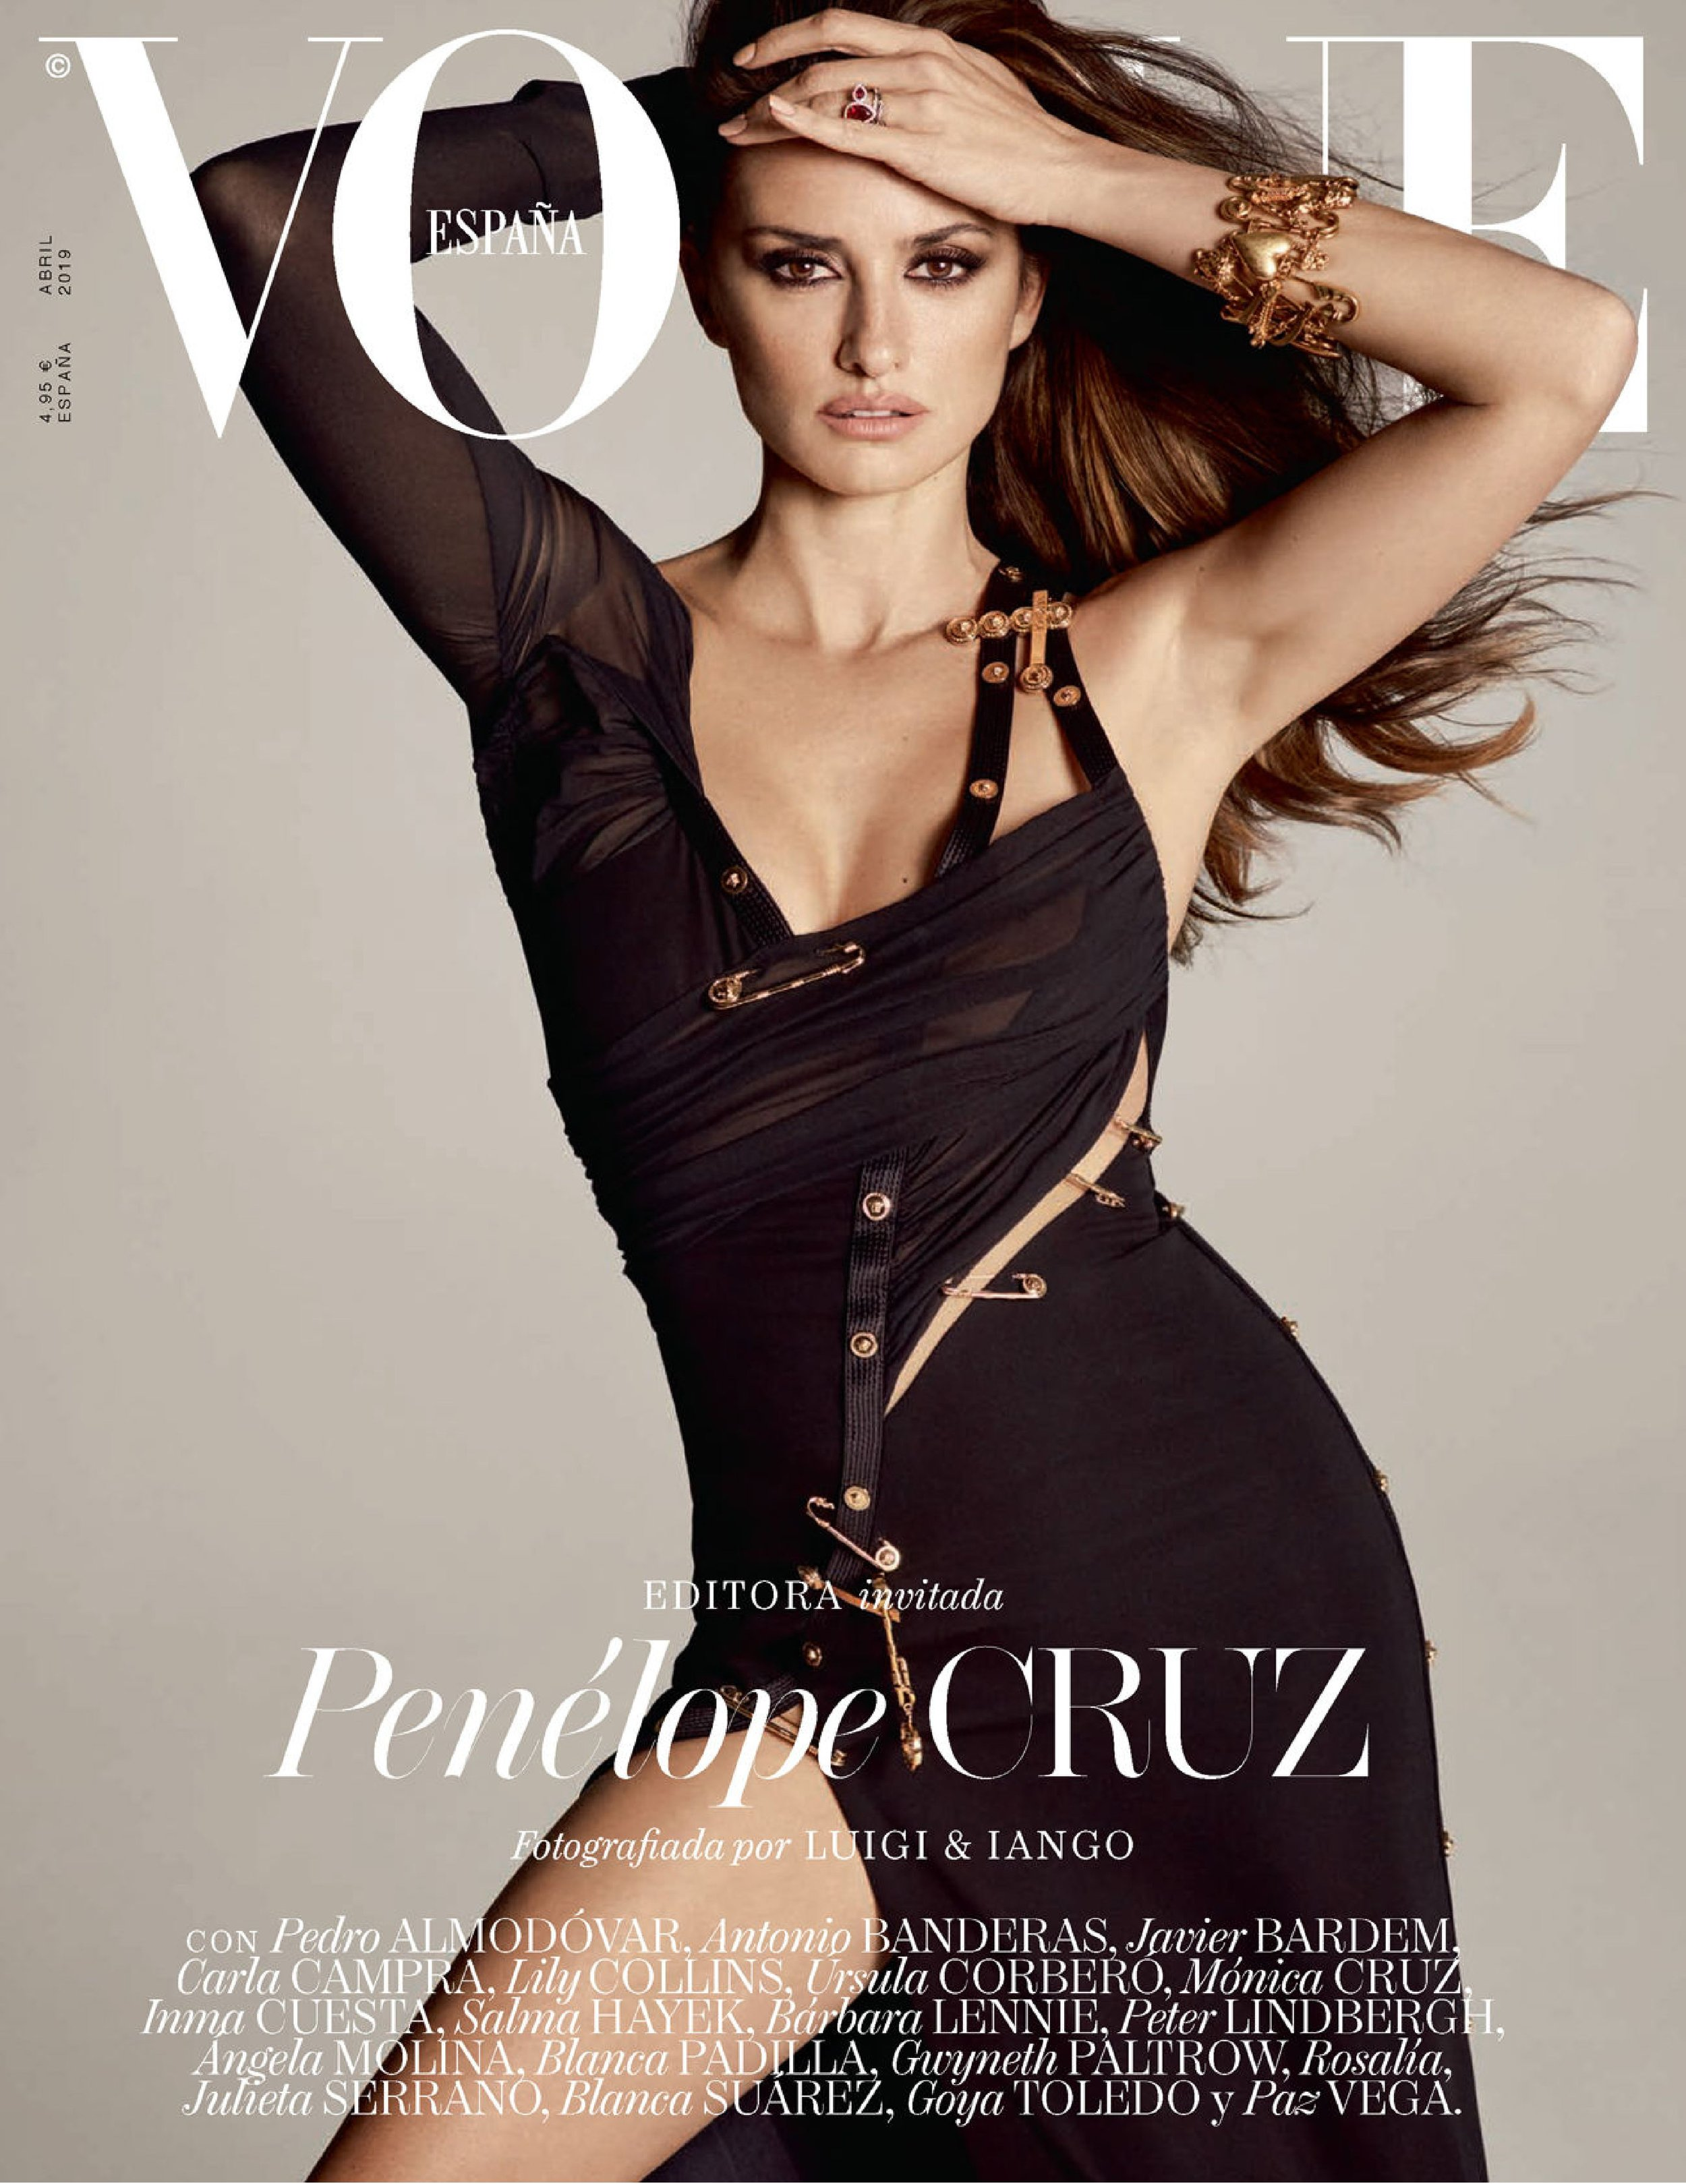 Penelope-Cruz-Luigi-Iango-Vogue-Spain-April-2019- (12).jpg